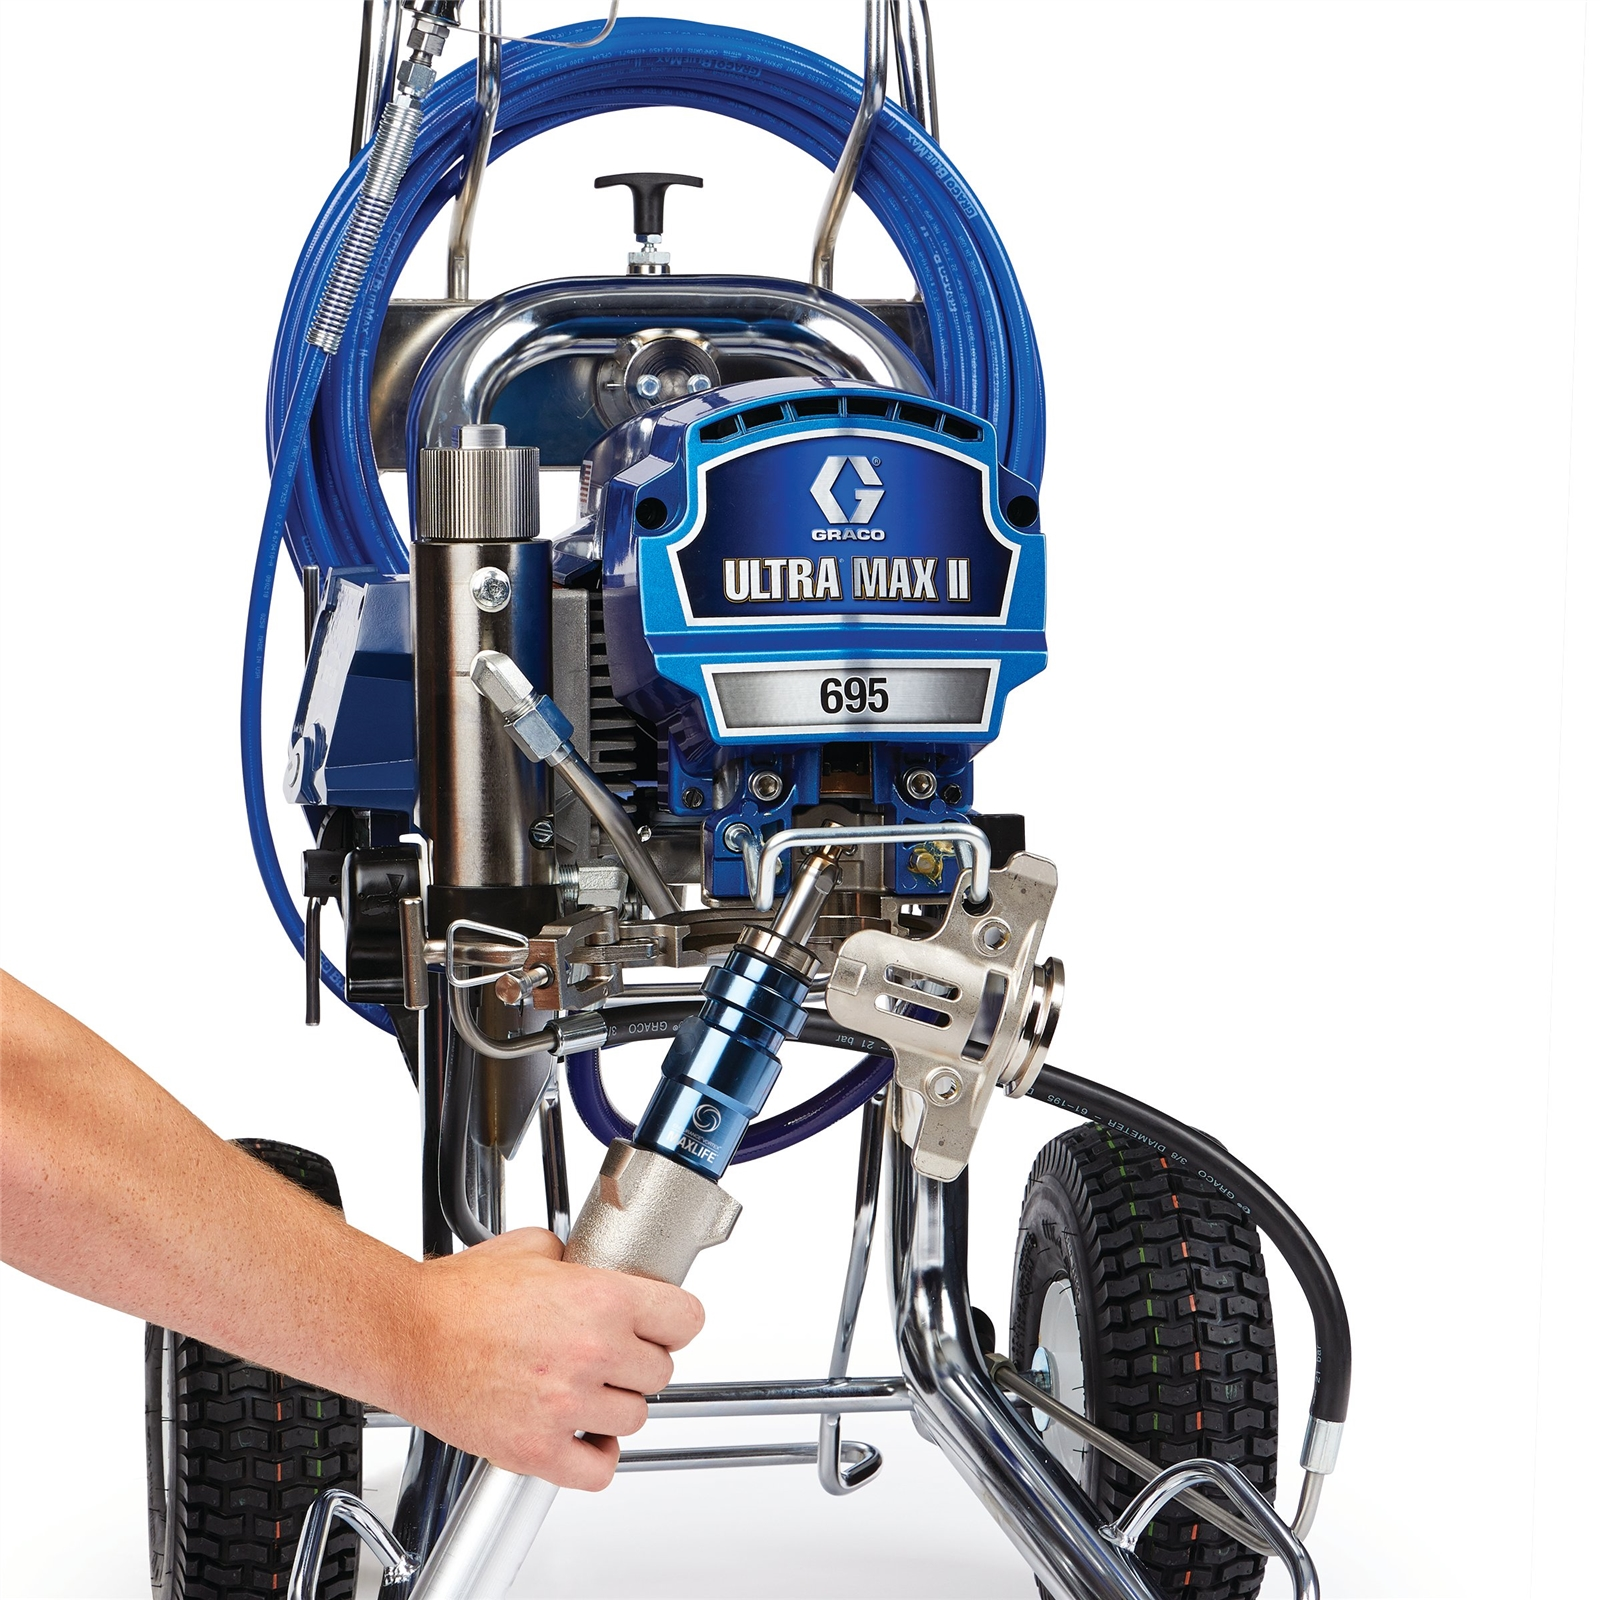 Ultra Max II 695 ProContractor Series Electric Airless Sprayer